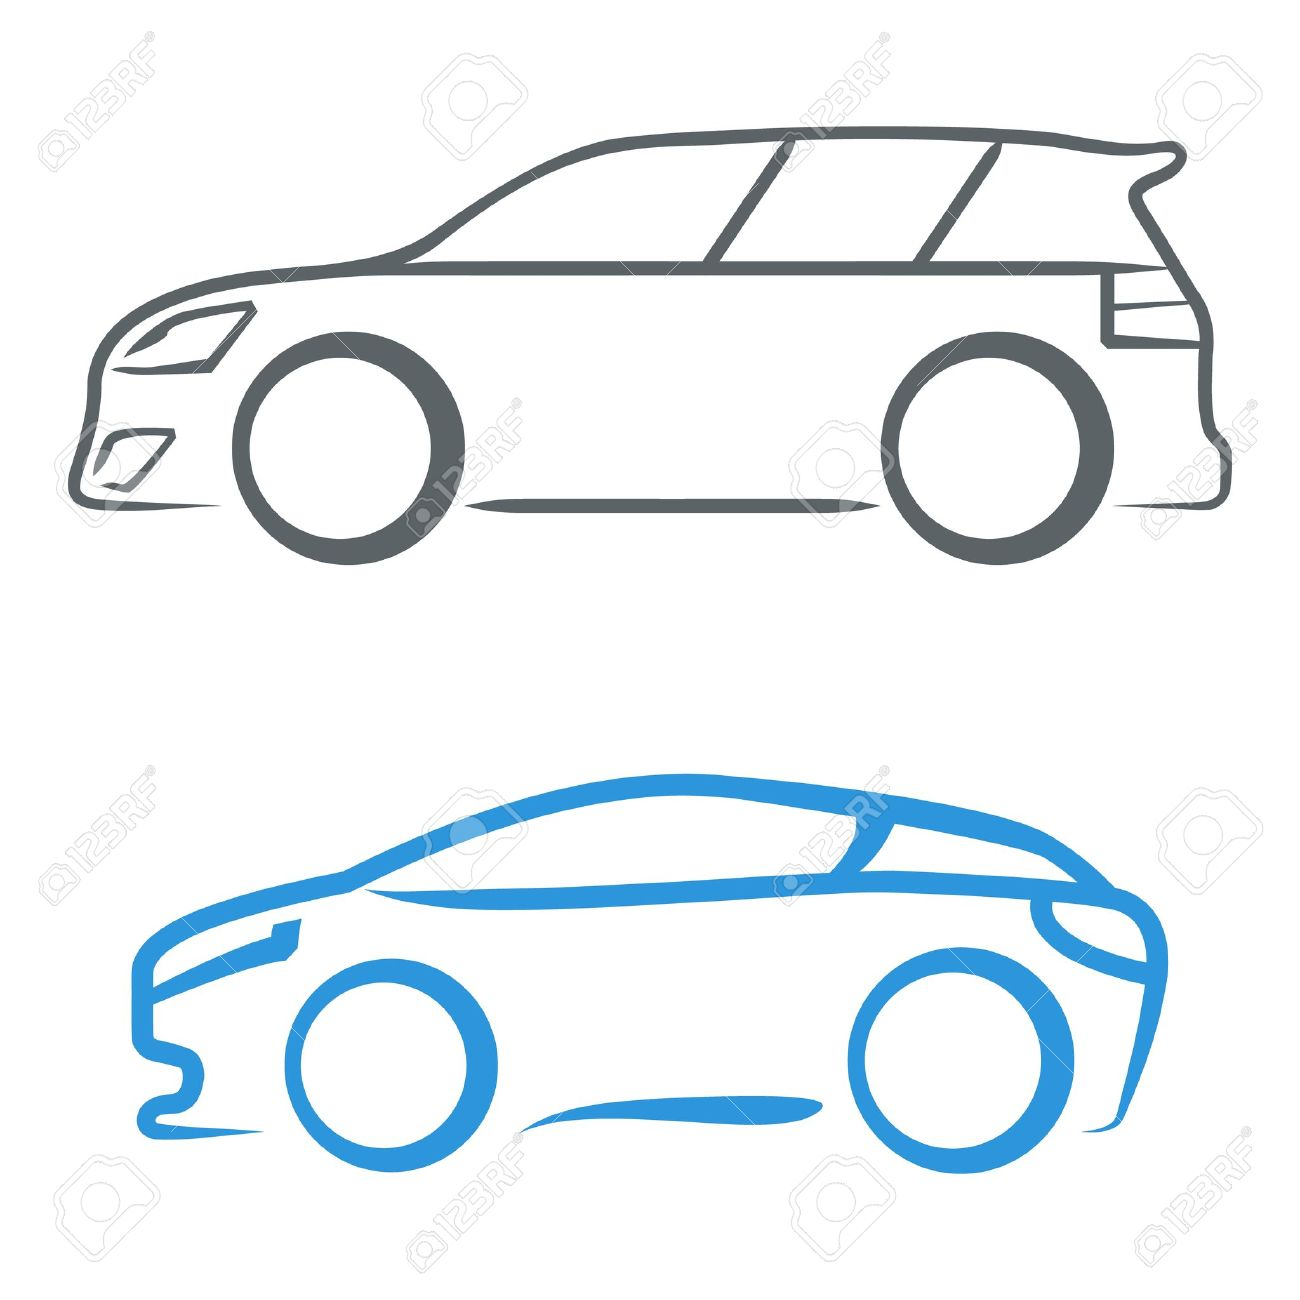 sports car sign symbol royalty free cliparts vectors and stock